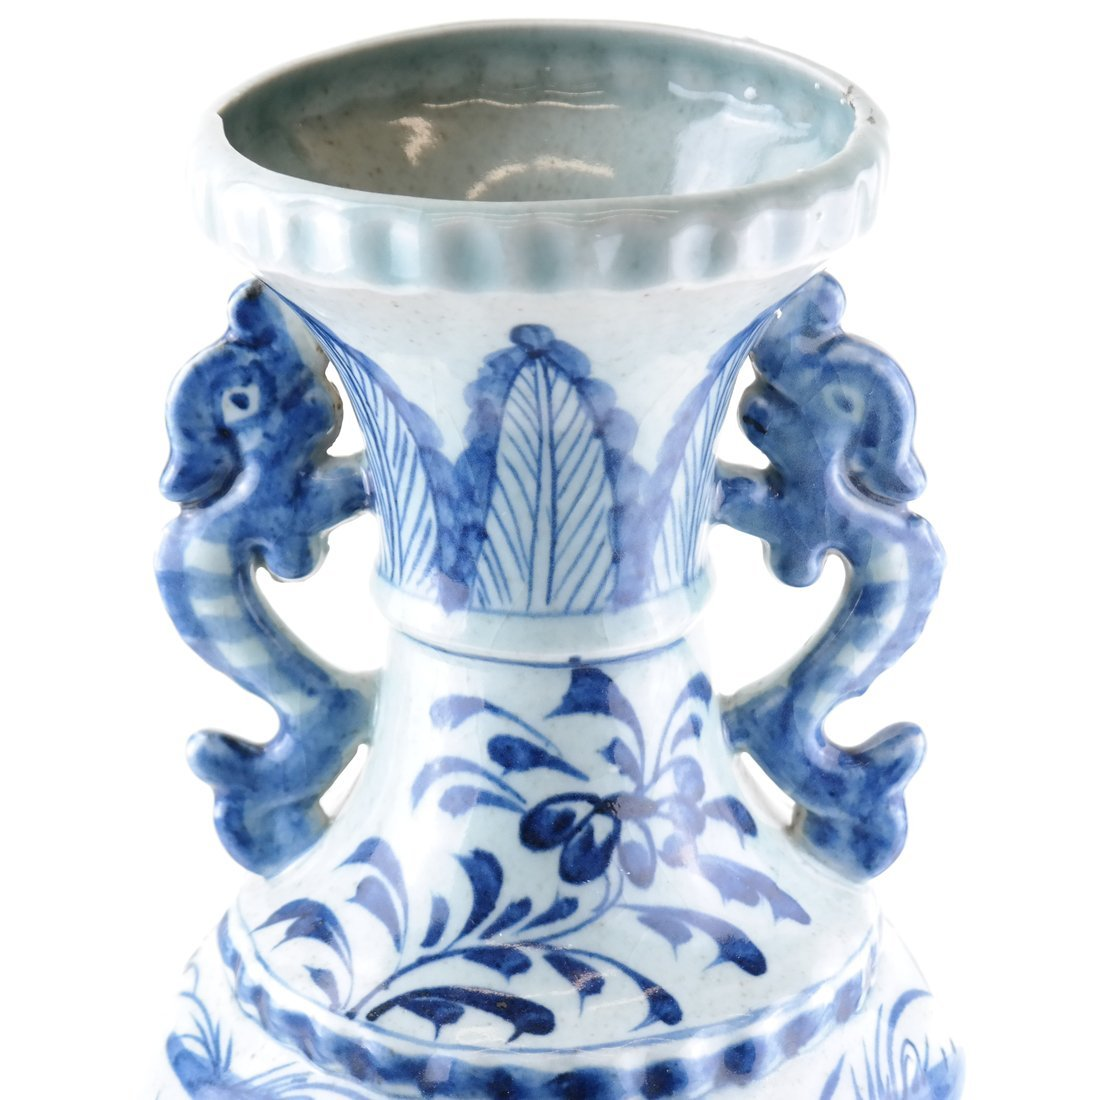 Asian-Style Blue and White Ceramic Vase - 2